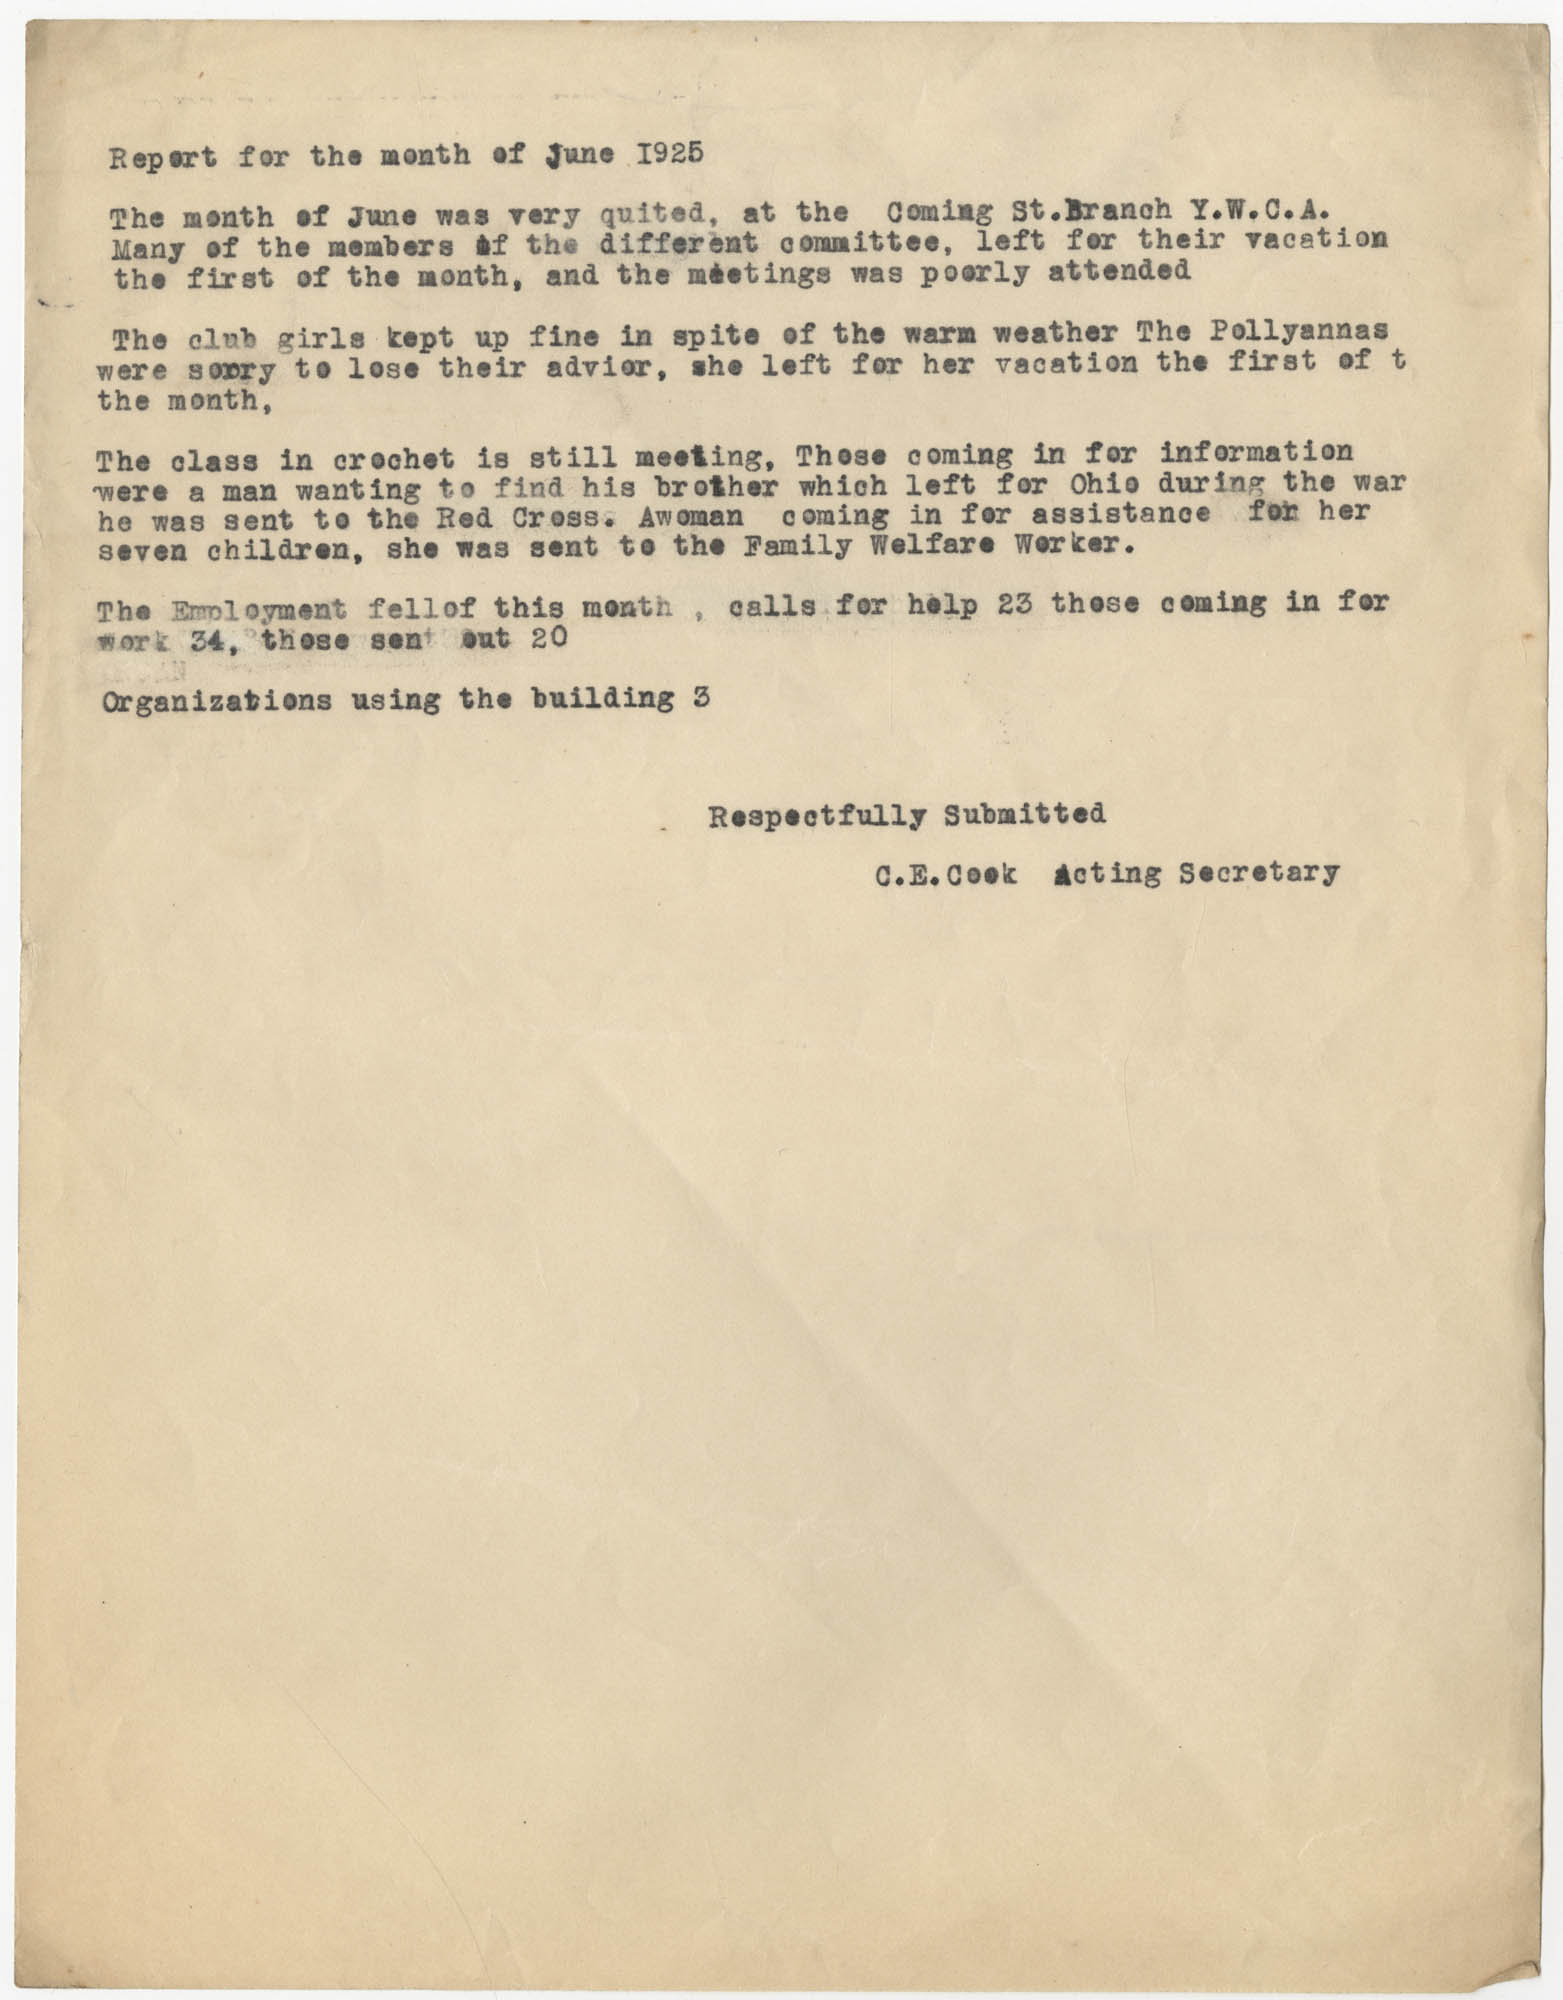 Monthly Report for the Coming Street Y.W.C.A., June 1925